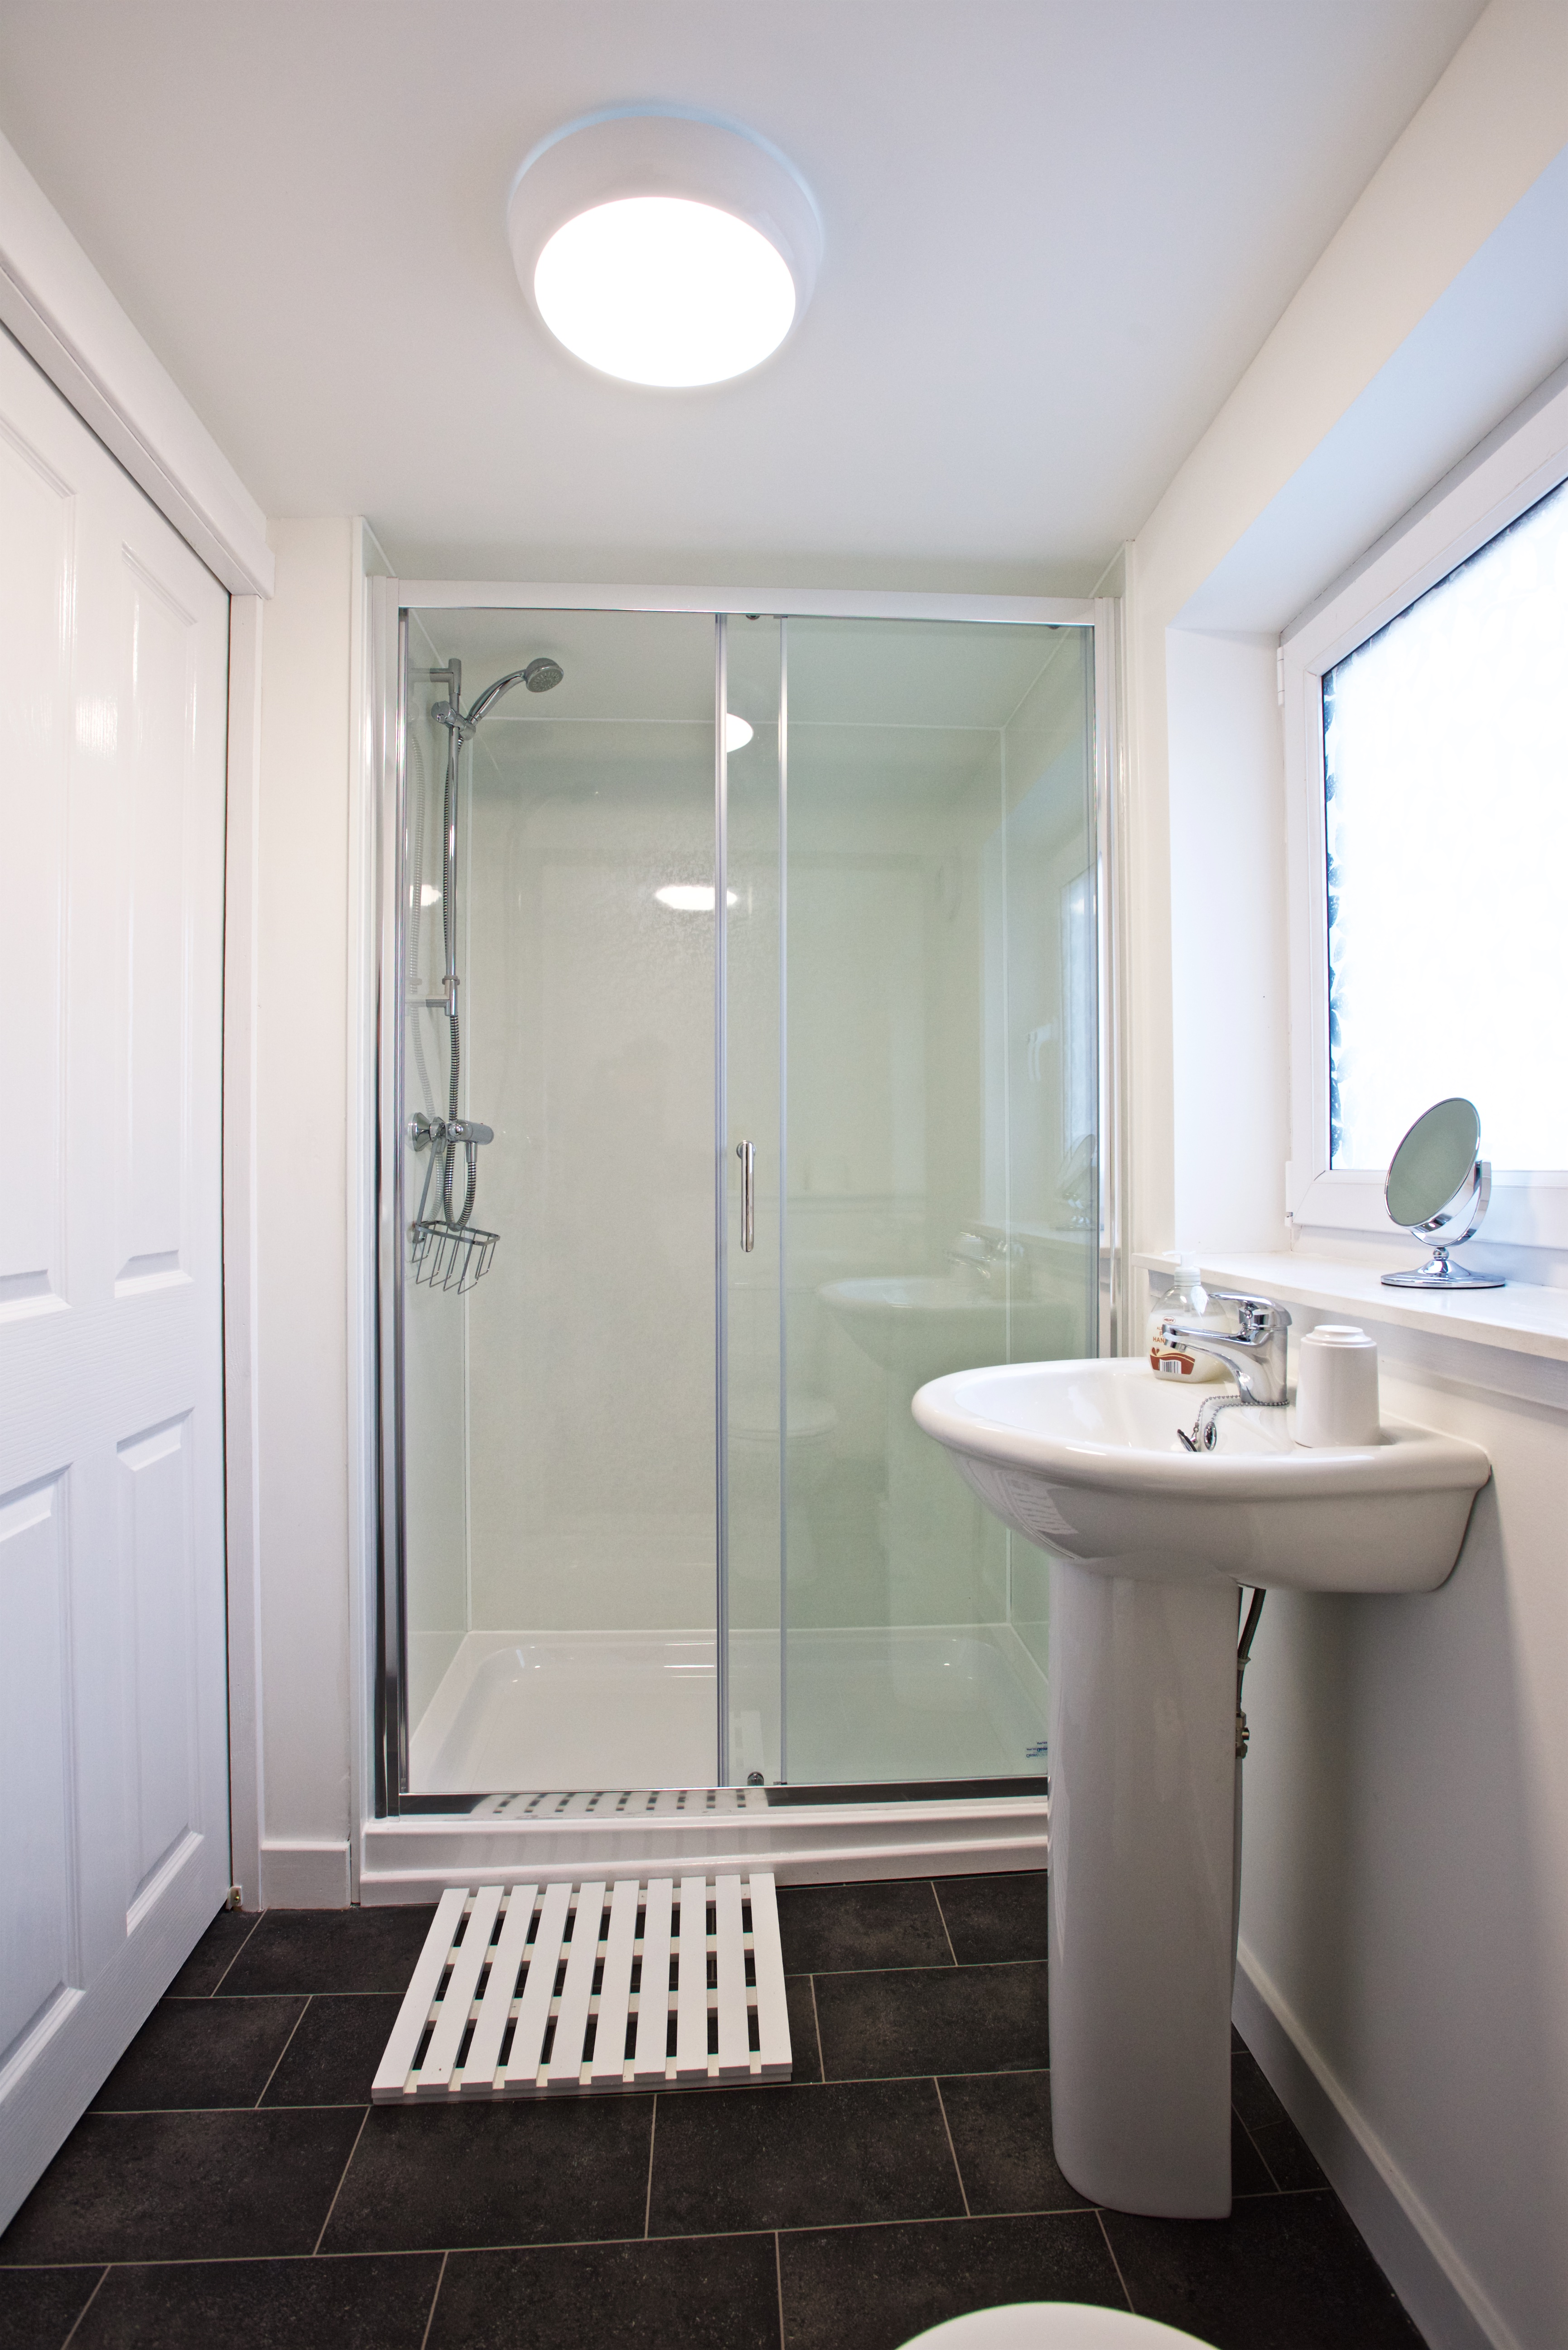 basement shower london room bathroom a photo contemporary beautiful